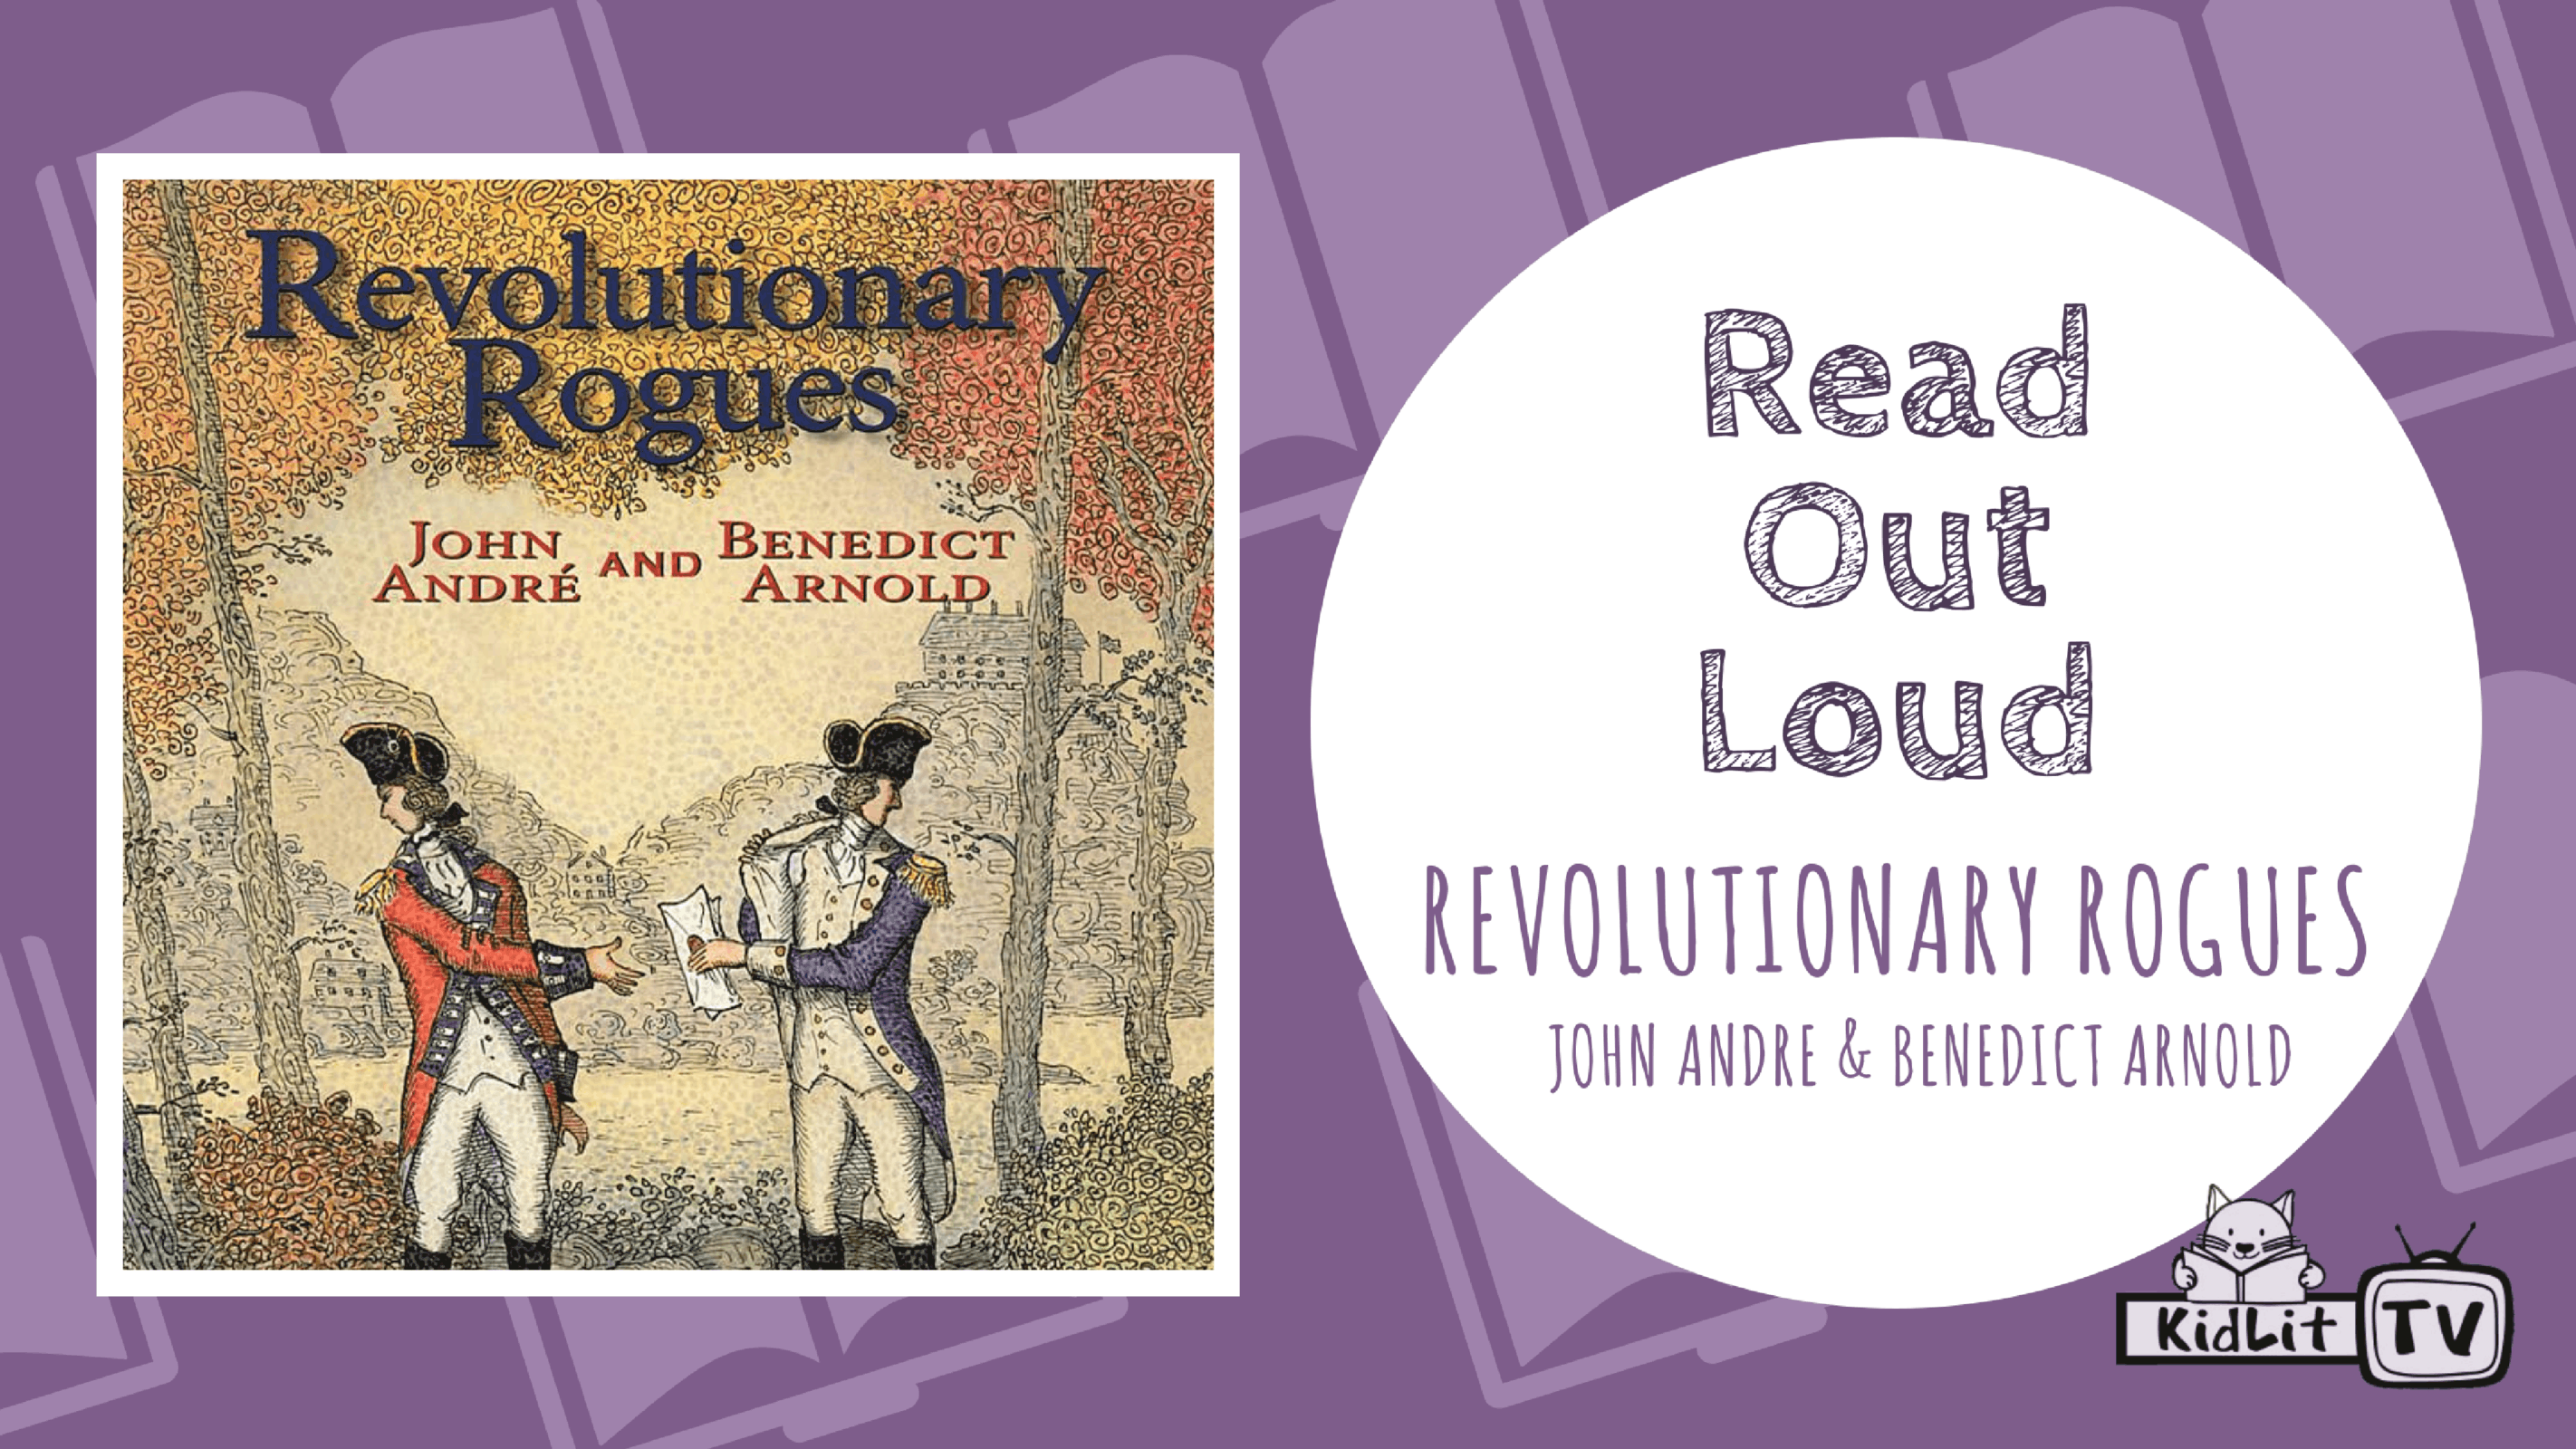 Read Out Loud: REVOLUTIONARY ROGUES - KidLit TV